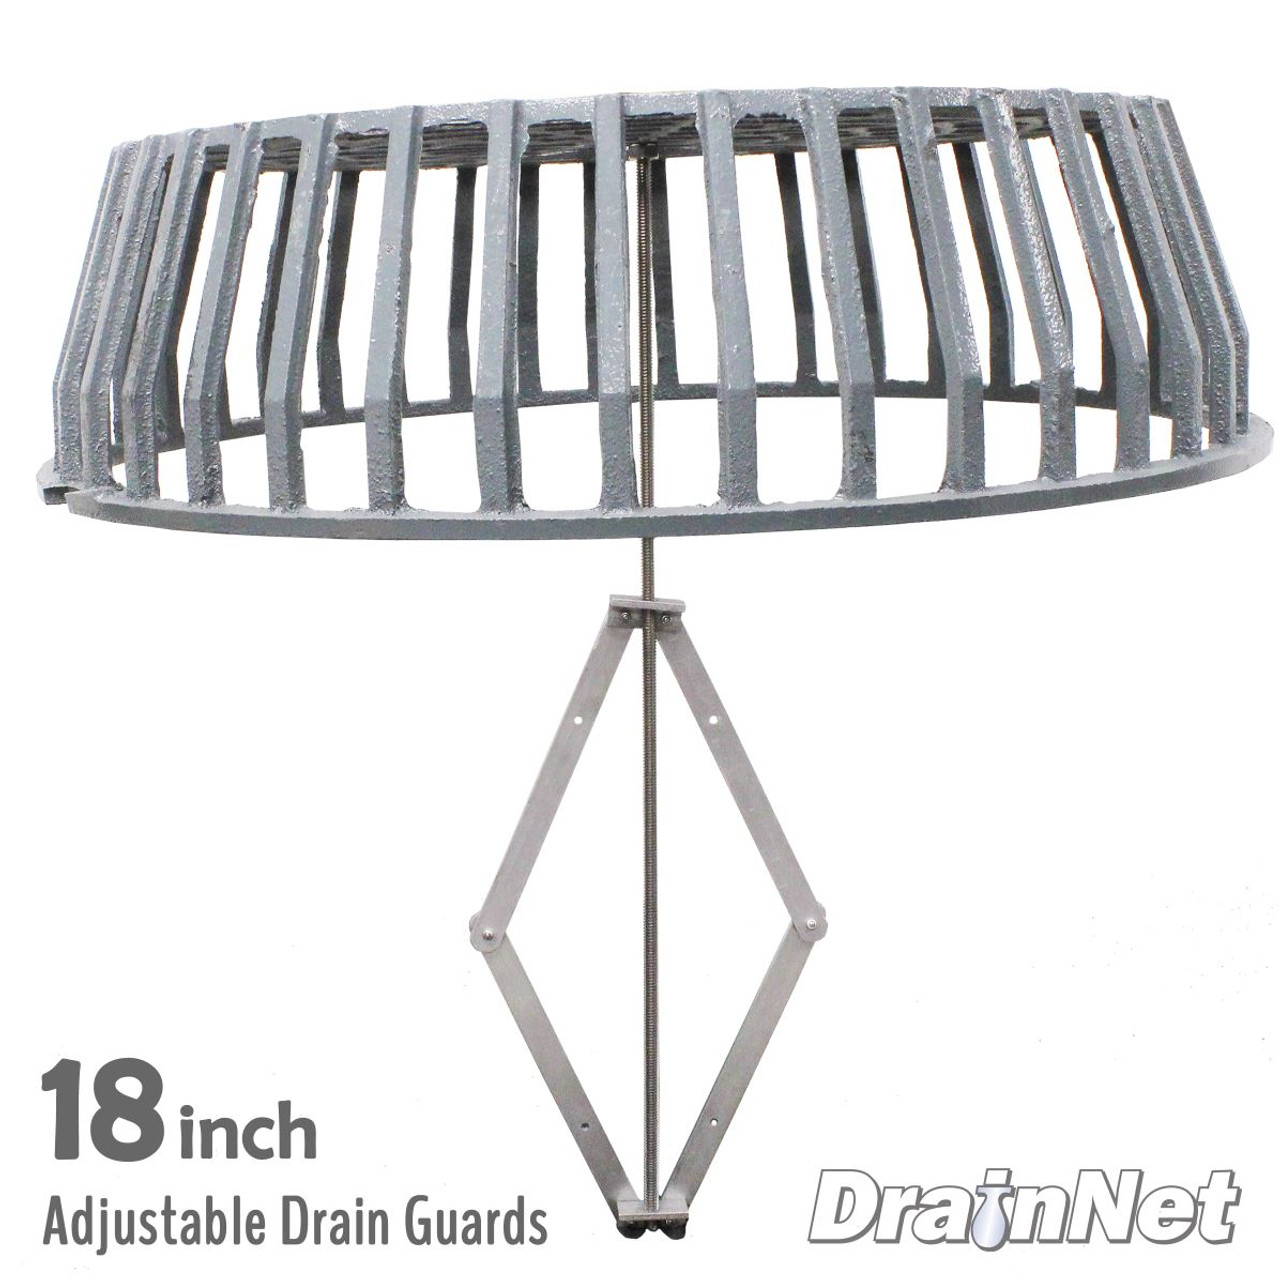 Adjustable Roof Drain Guards - 18 inch (ADG‐1047)